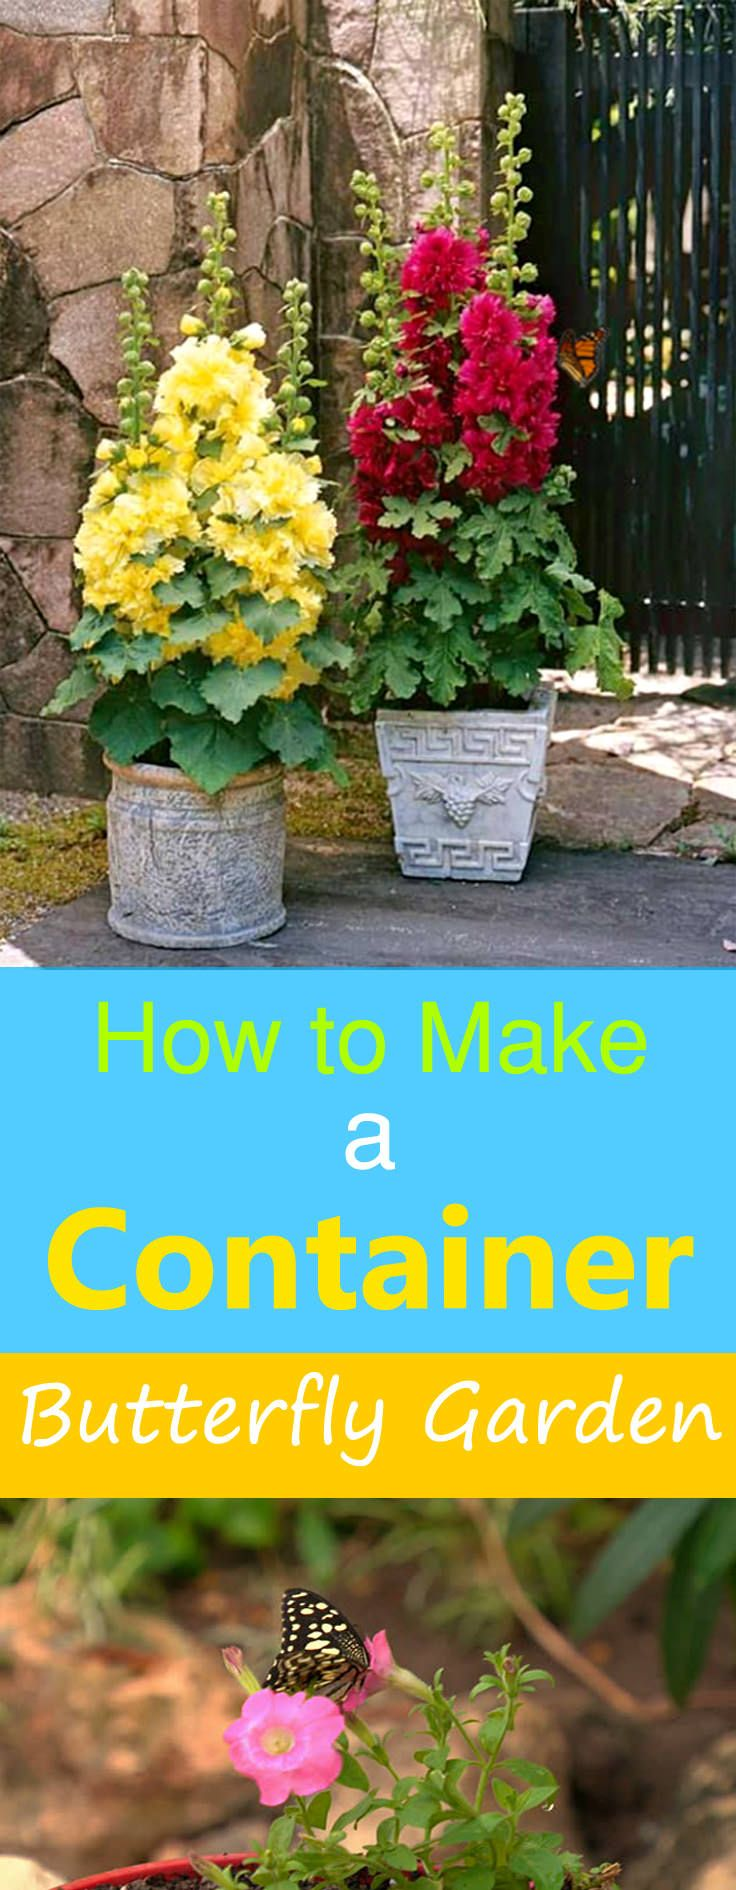 Urban gardening ideas containers - Who Does Not Love Butterflies And Making A Butterfly Container Garden Is A Great Way To Invite Beautiful Butterflies Fluttering Across Your Urban Garden